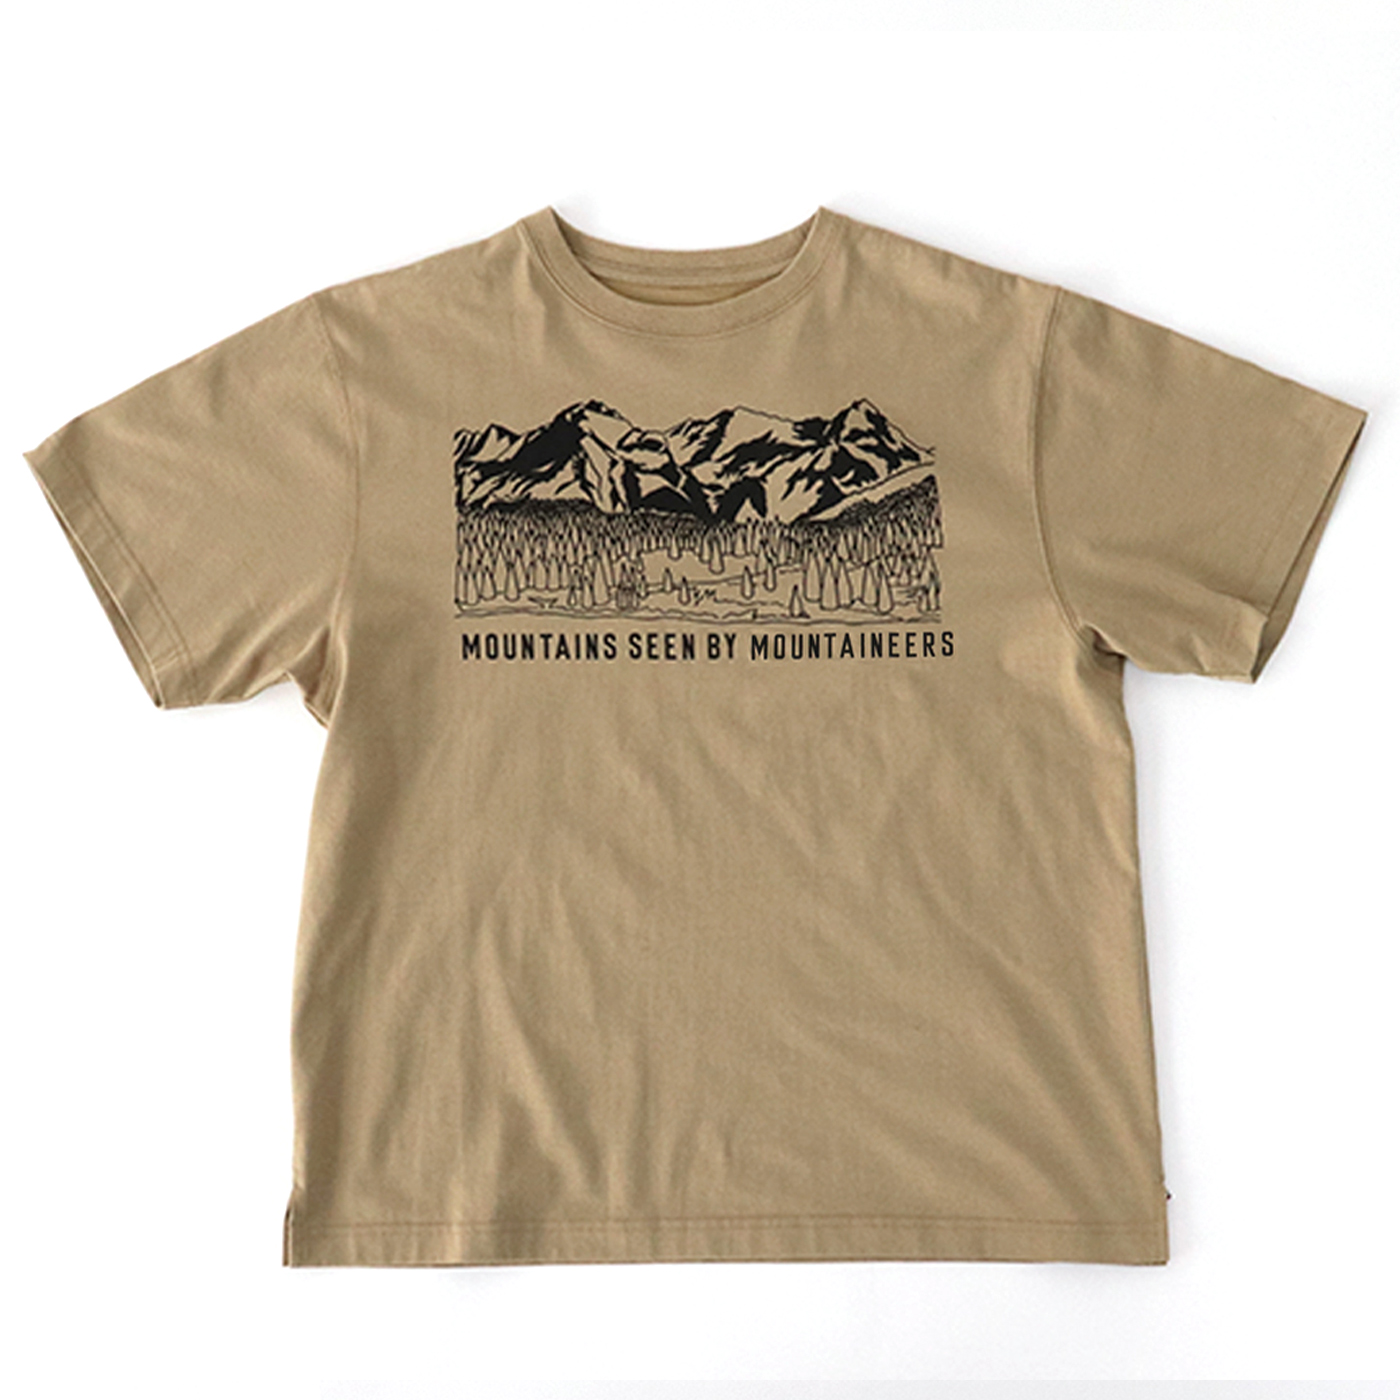 product: SEEN BY MOUNTAINEERS / color: BEIGE 1